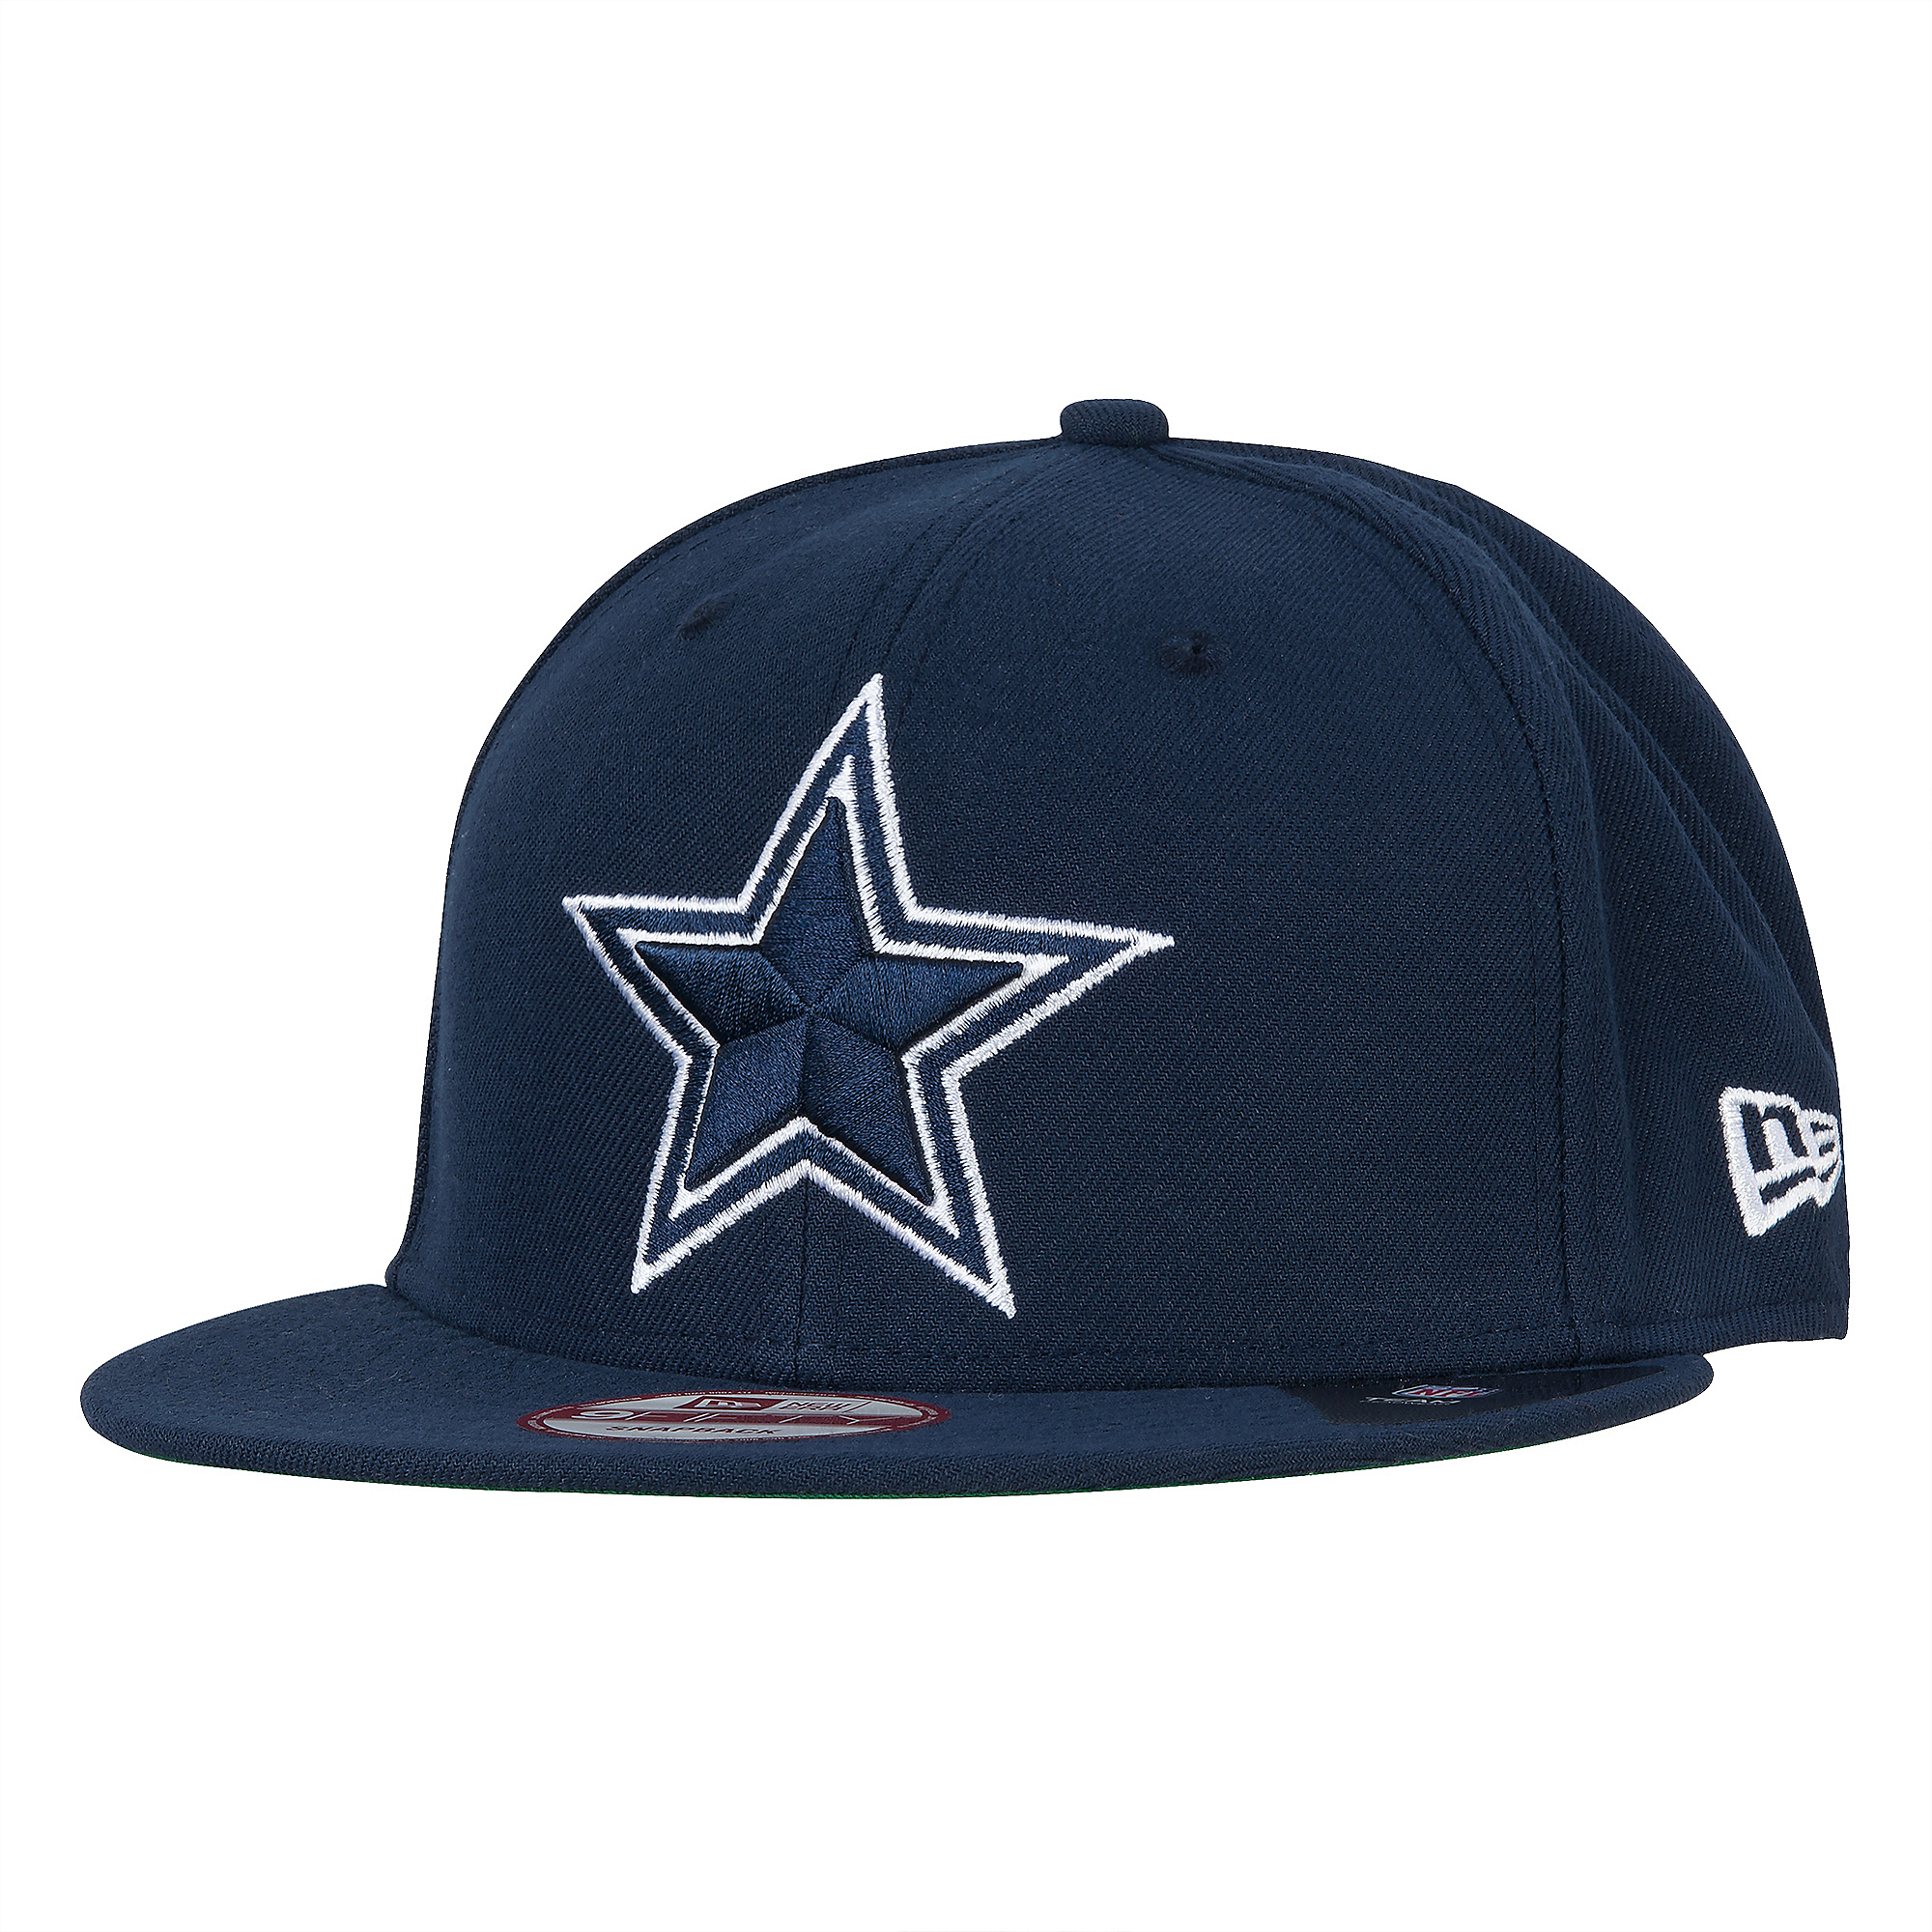 7ea796996bc Dallas Cowboys New Era Super Bowl VI 9Fifty Cap